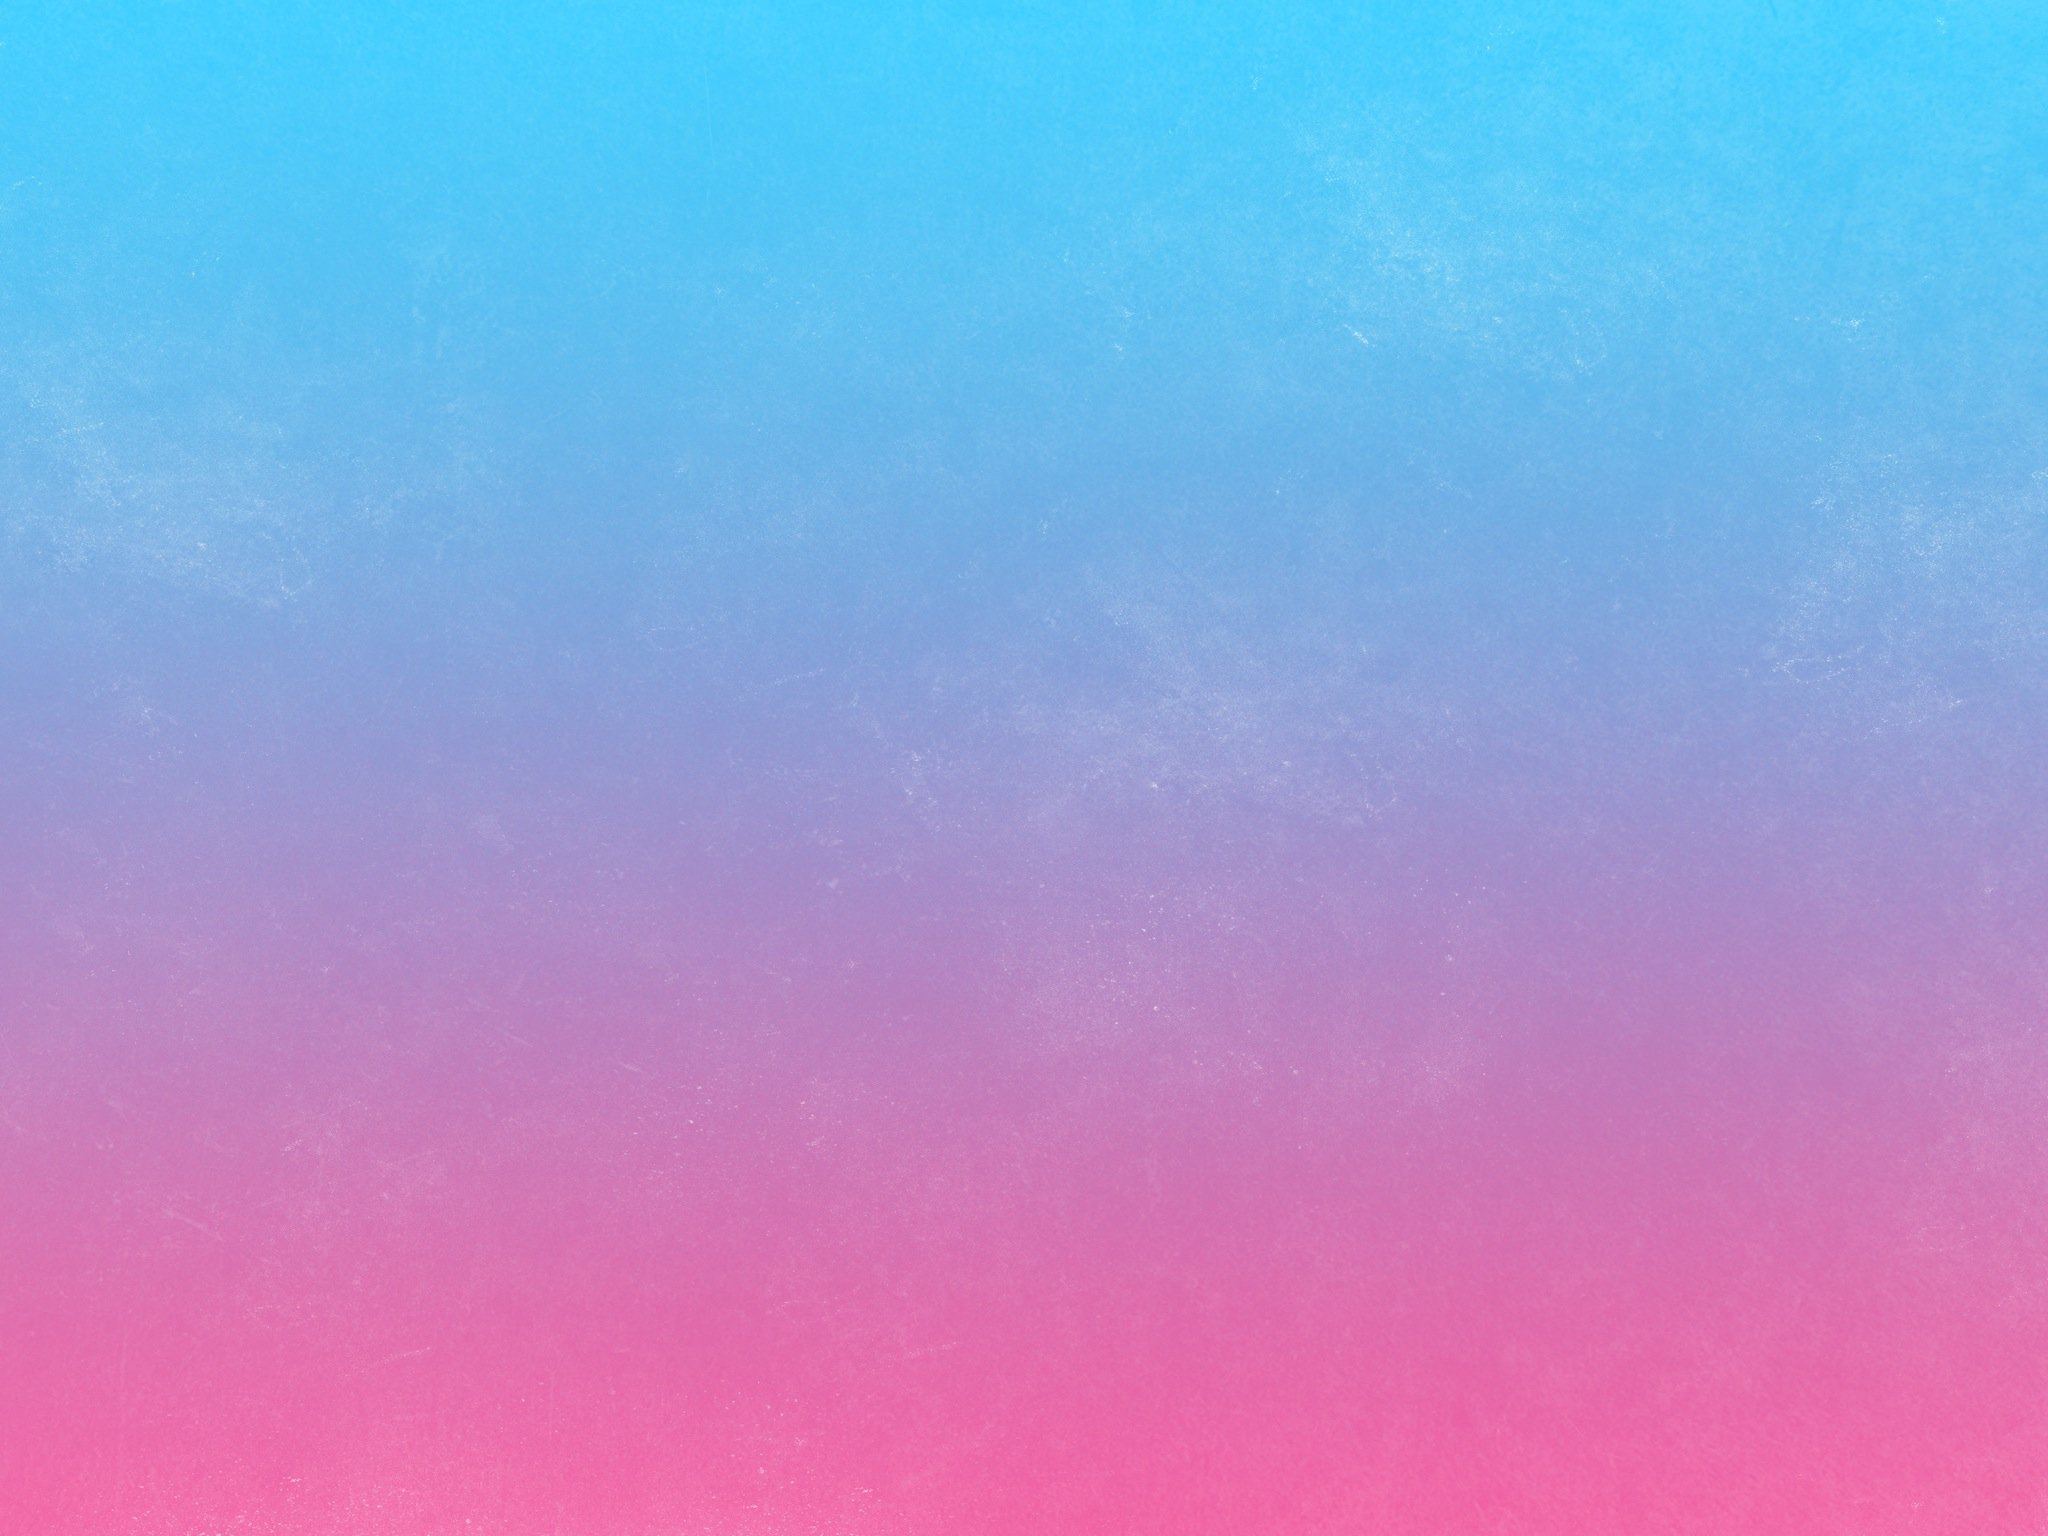 Light Blue And Pink Wallpaper Wallpapersafari